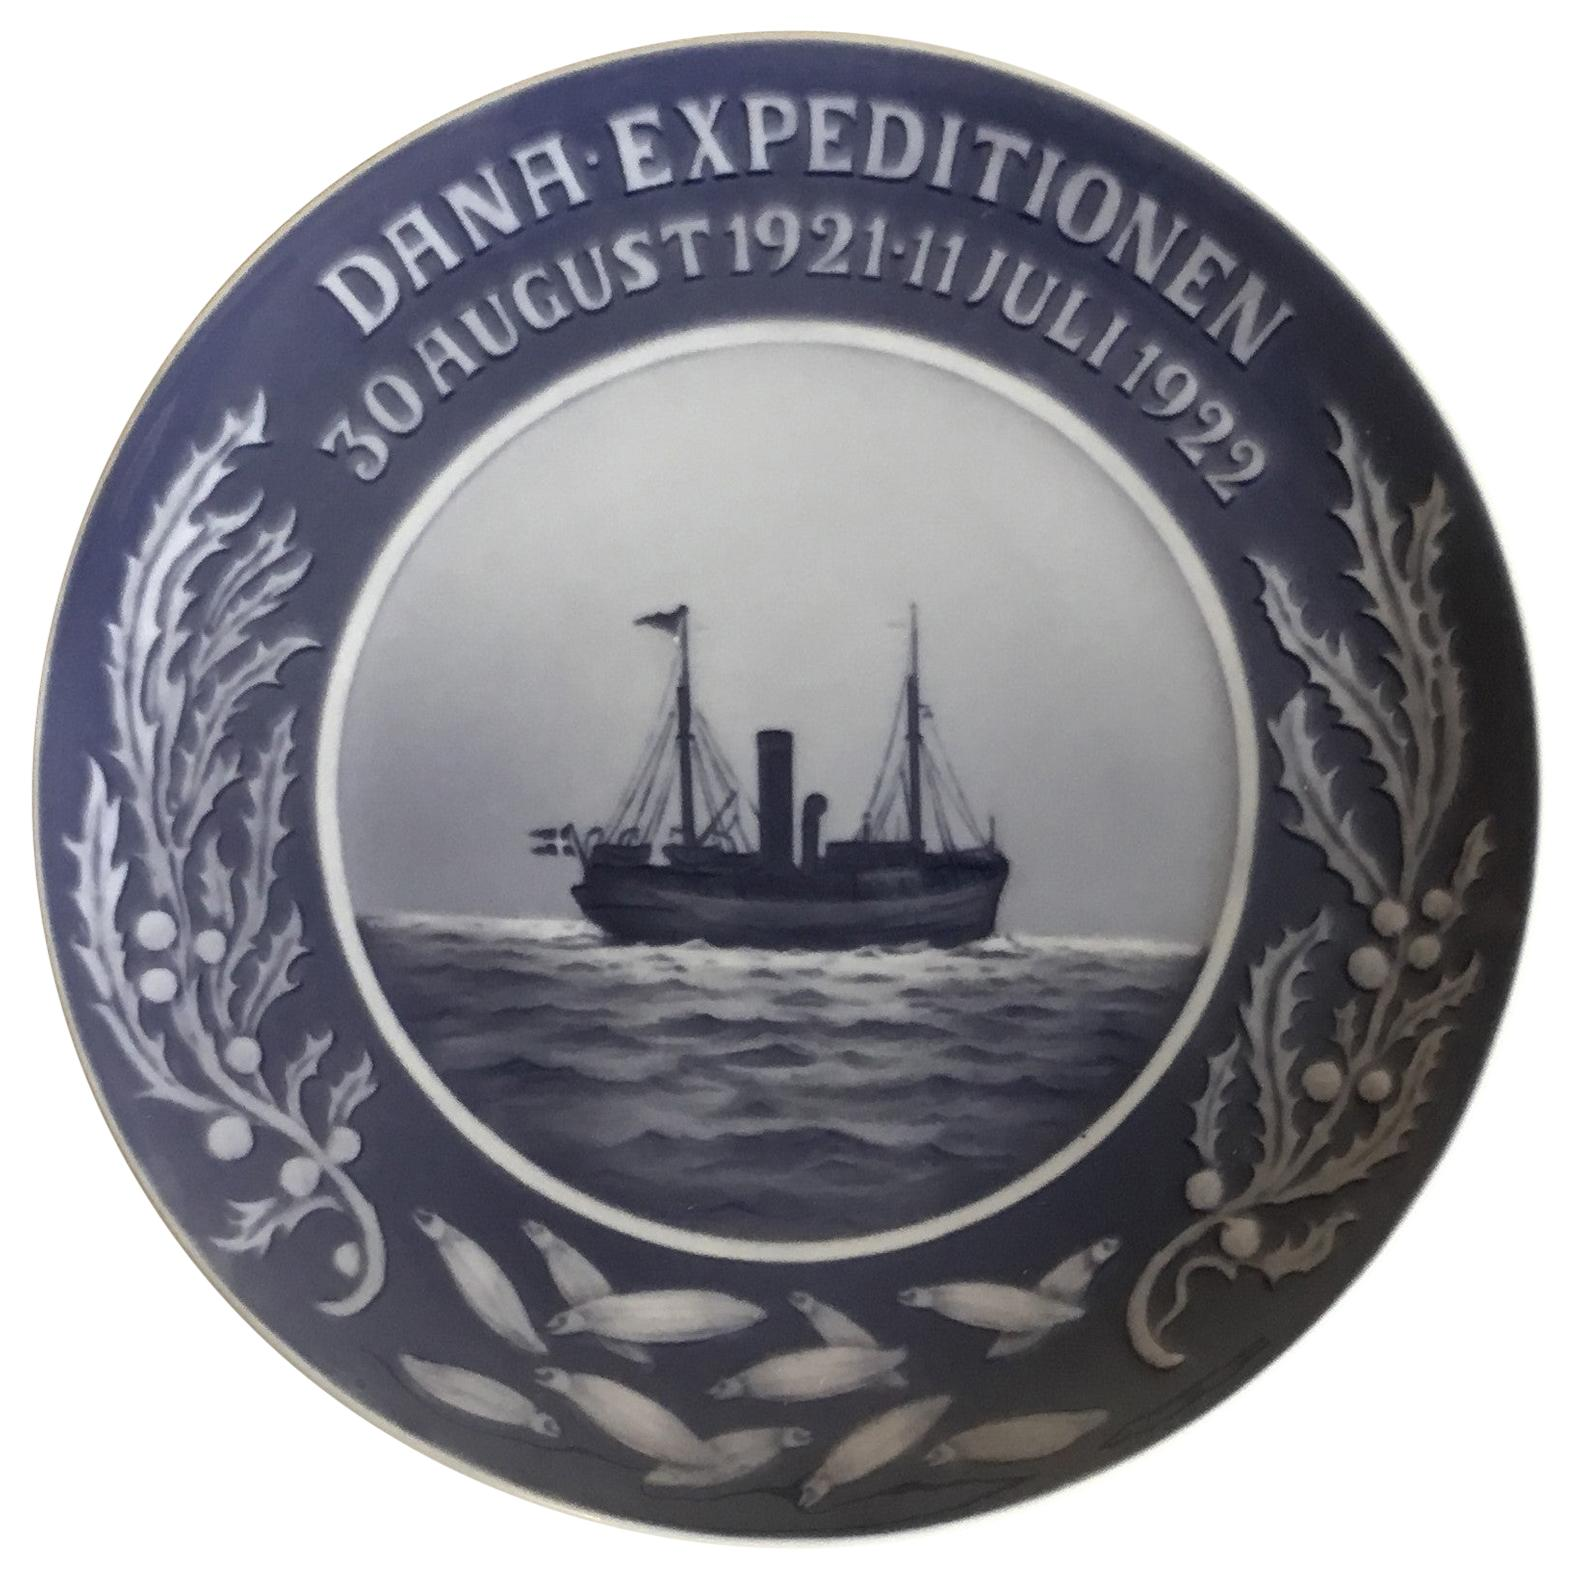 Royal Copenhagen Commemorative Plate from 1922 RC-CM217 Dana Expedition